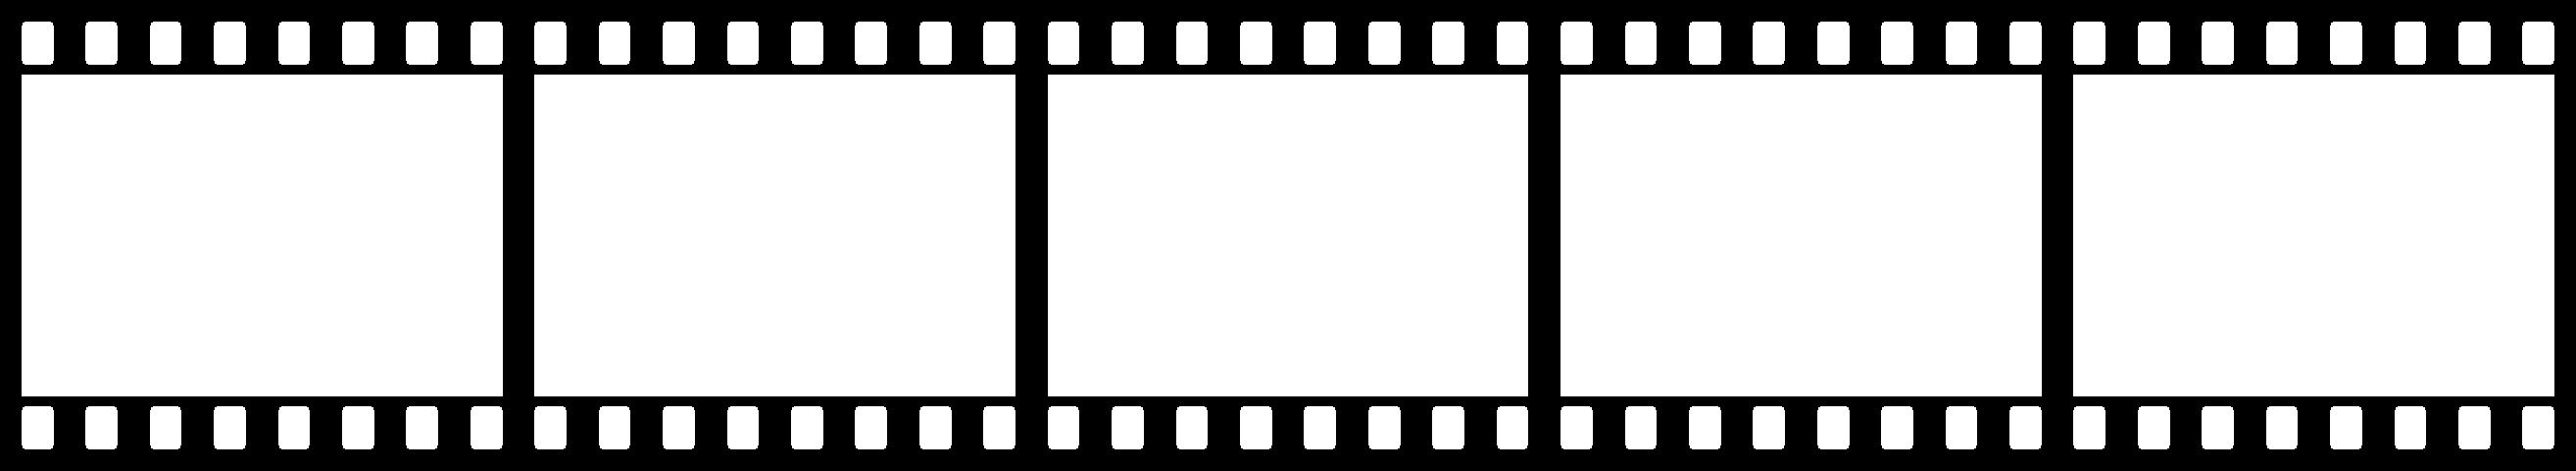 72 Film Strip Clipart images . Use these free Film Strip Clipart for ...